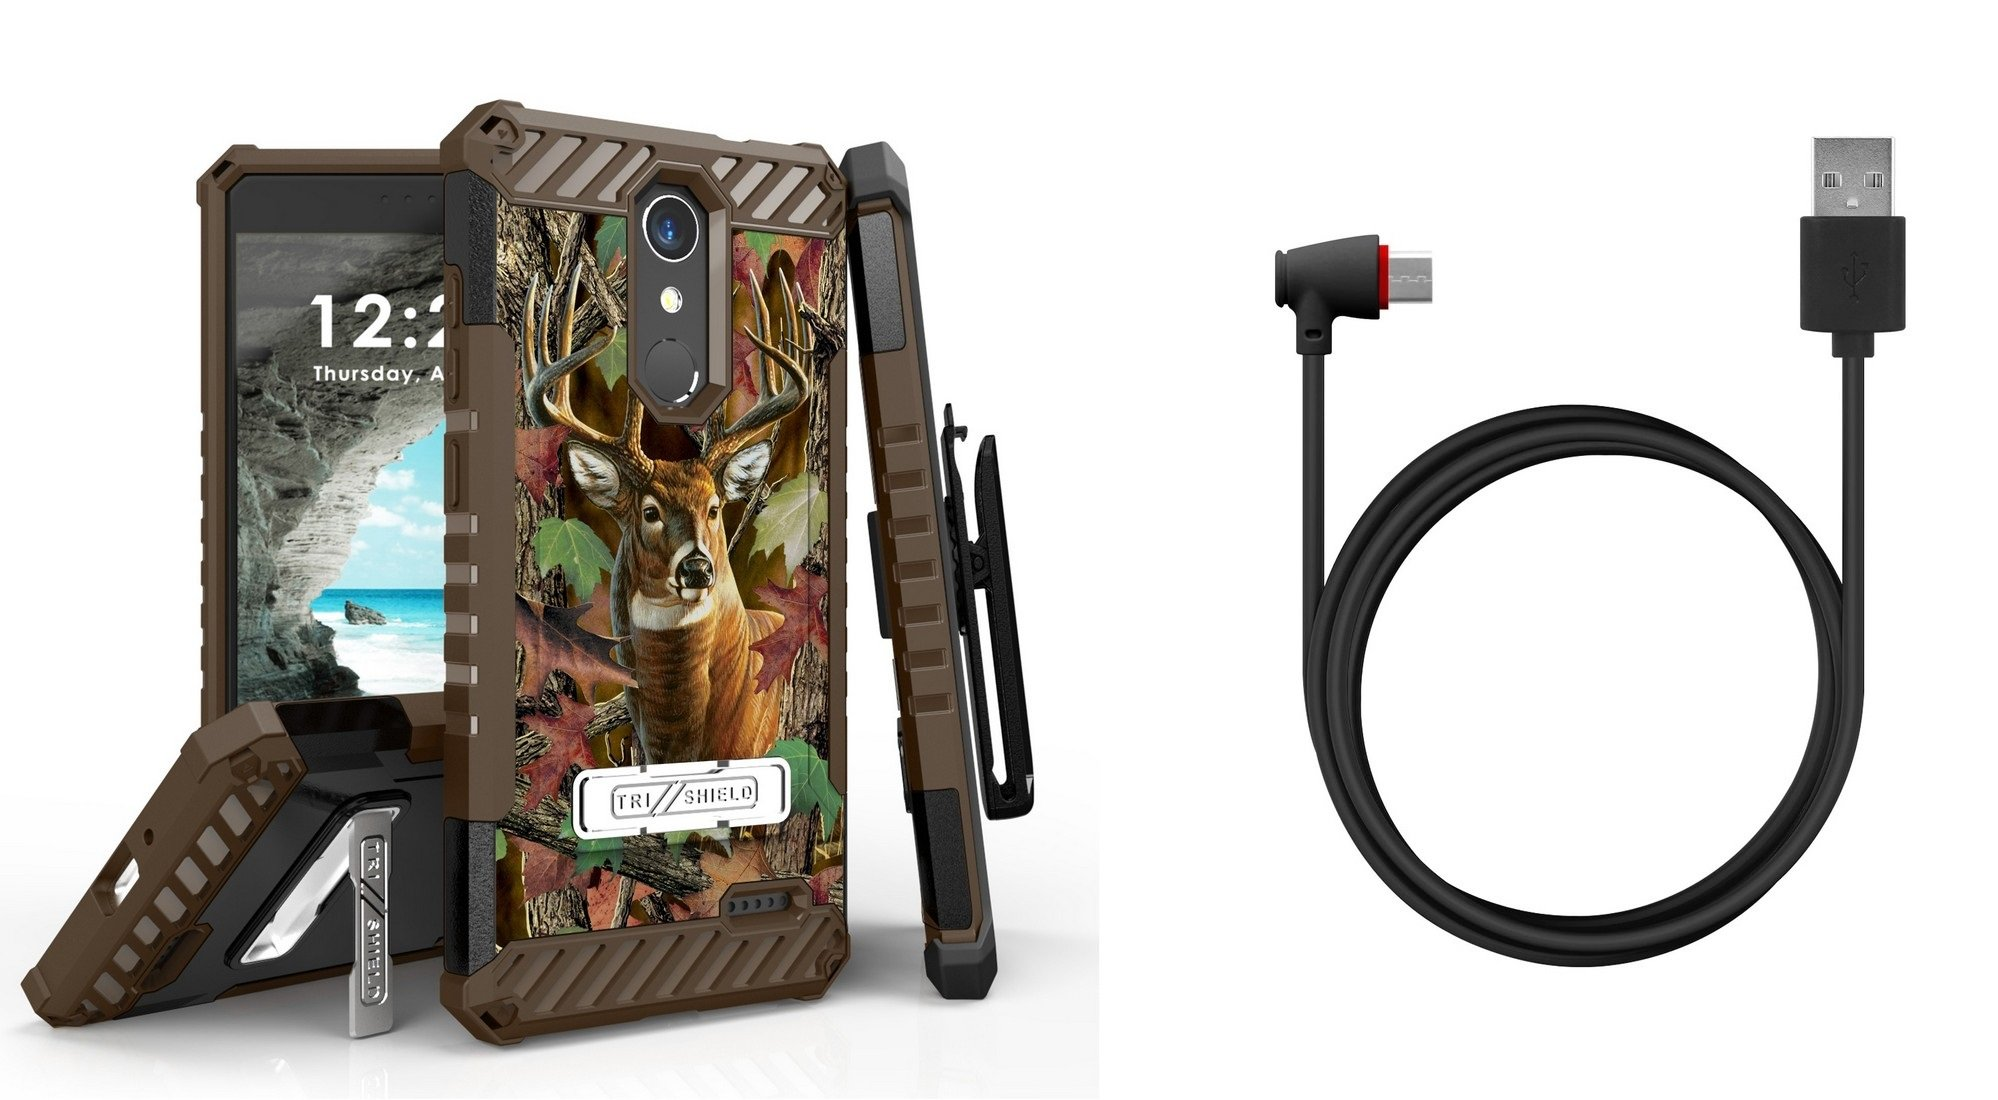 Tri-Shield Military Grade Case Bundle with Belt Clip Holster (Deer Camo), [90 Degree/Right Angle] USB Type C Cable [4 Foot], Atom Cloth for ZTE Blade Spark, ZTE ZMAX One LTE, ZTE Grand X 4